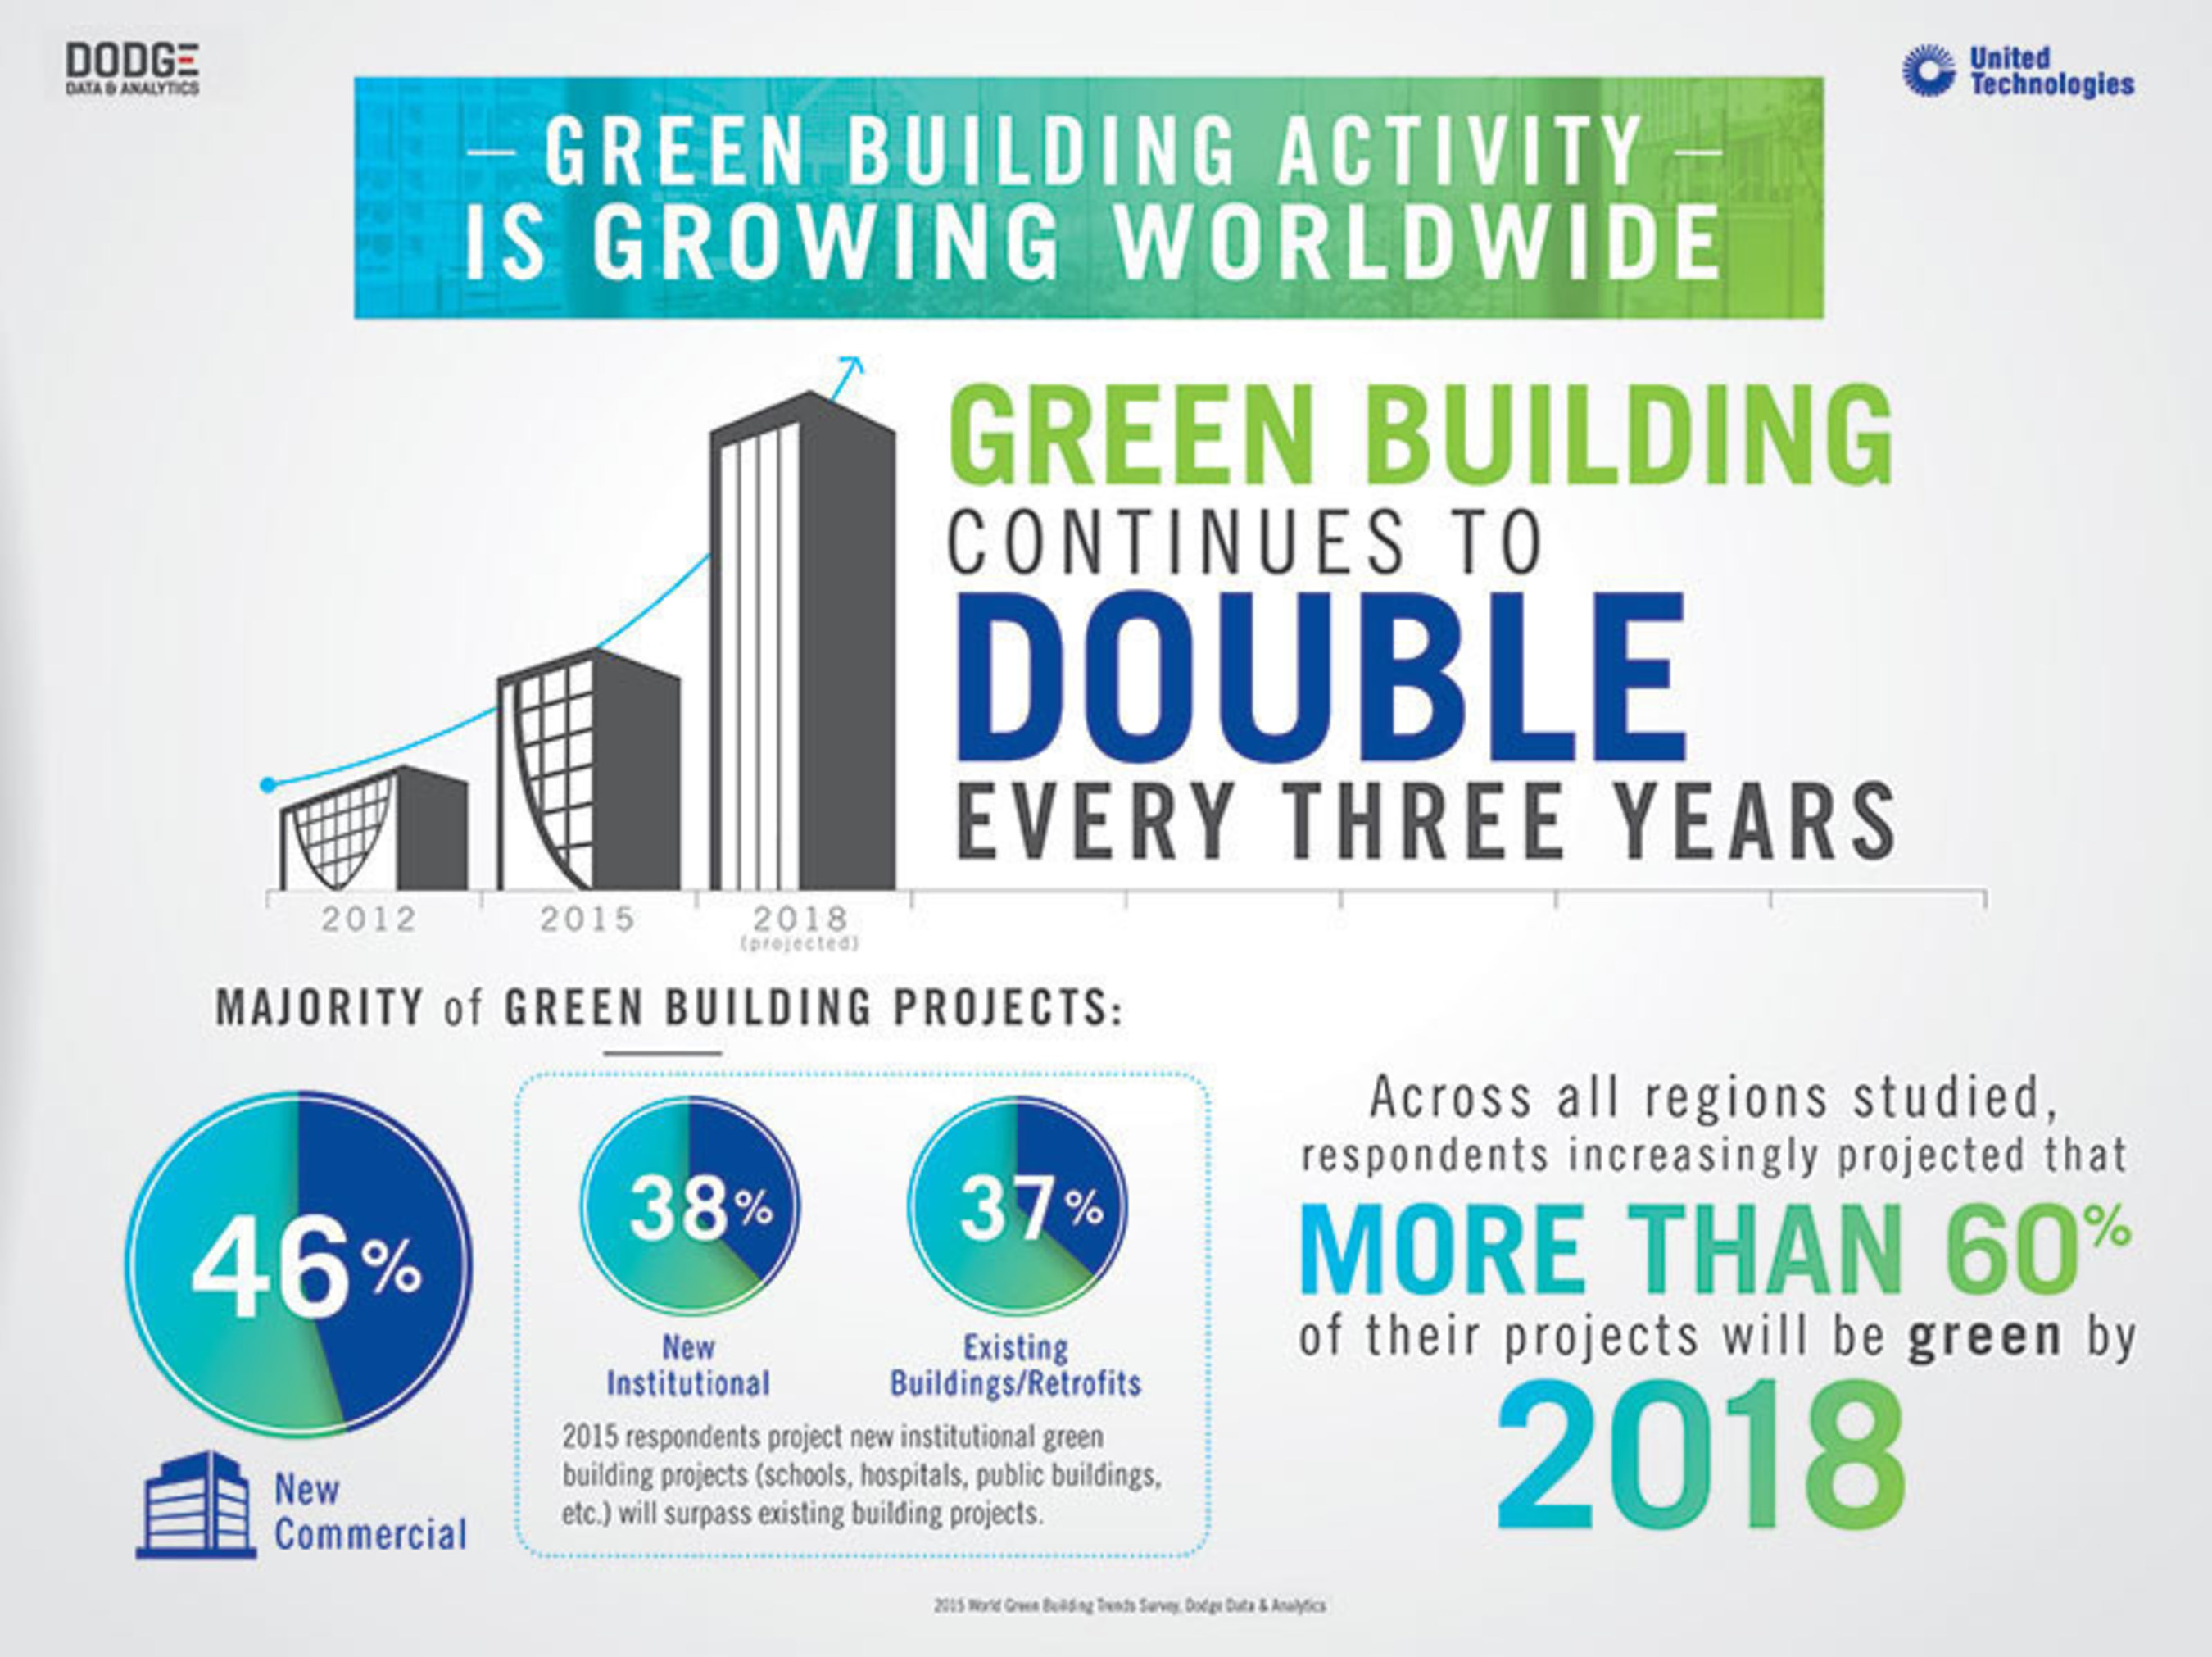 Green building continues to double every three years.